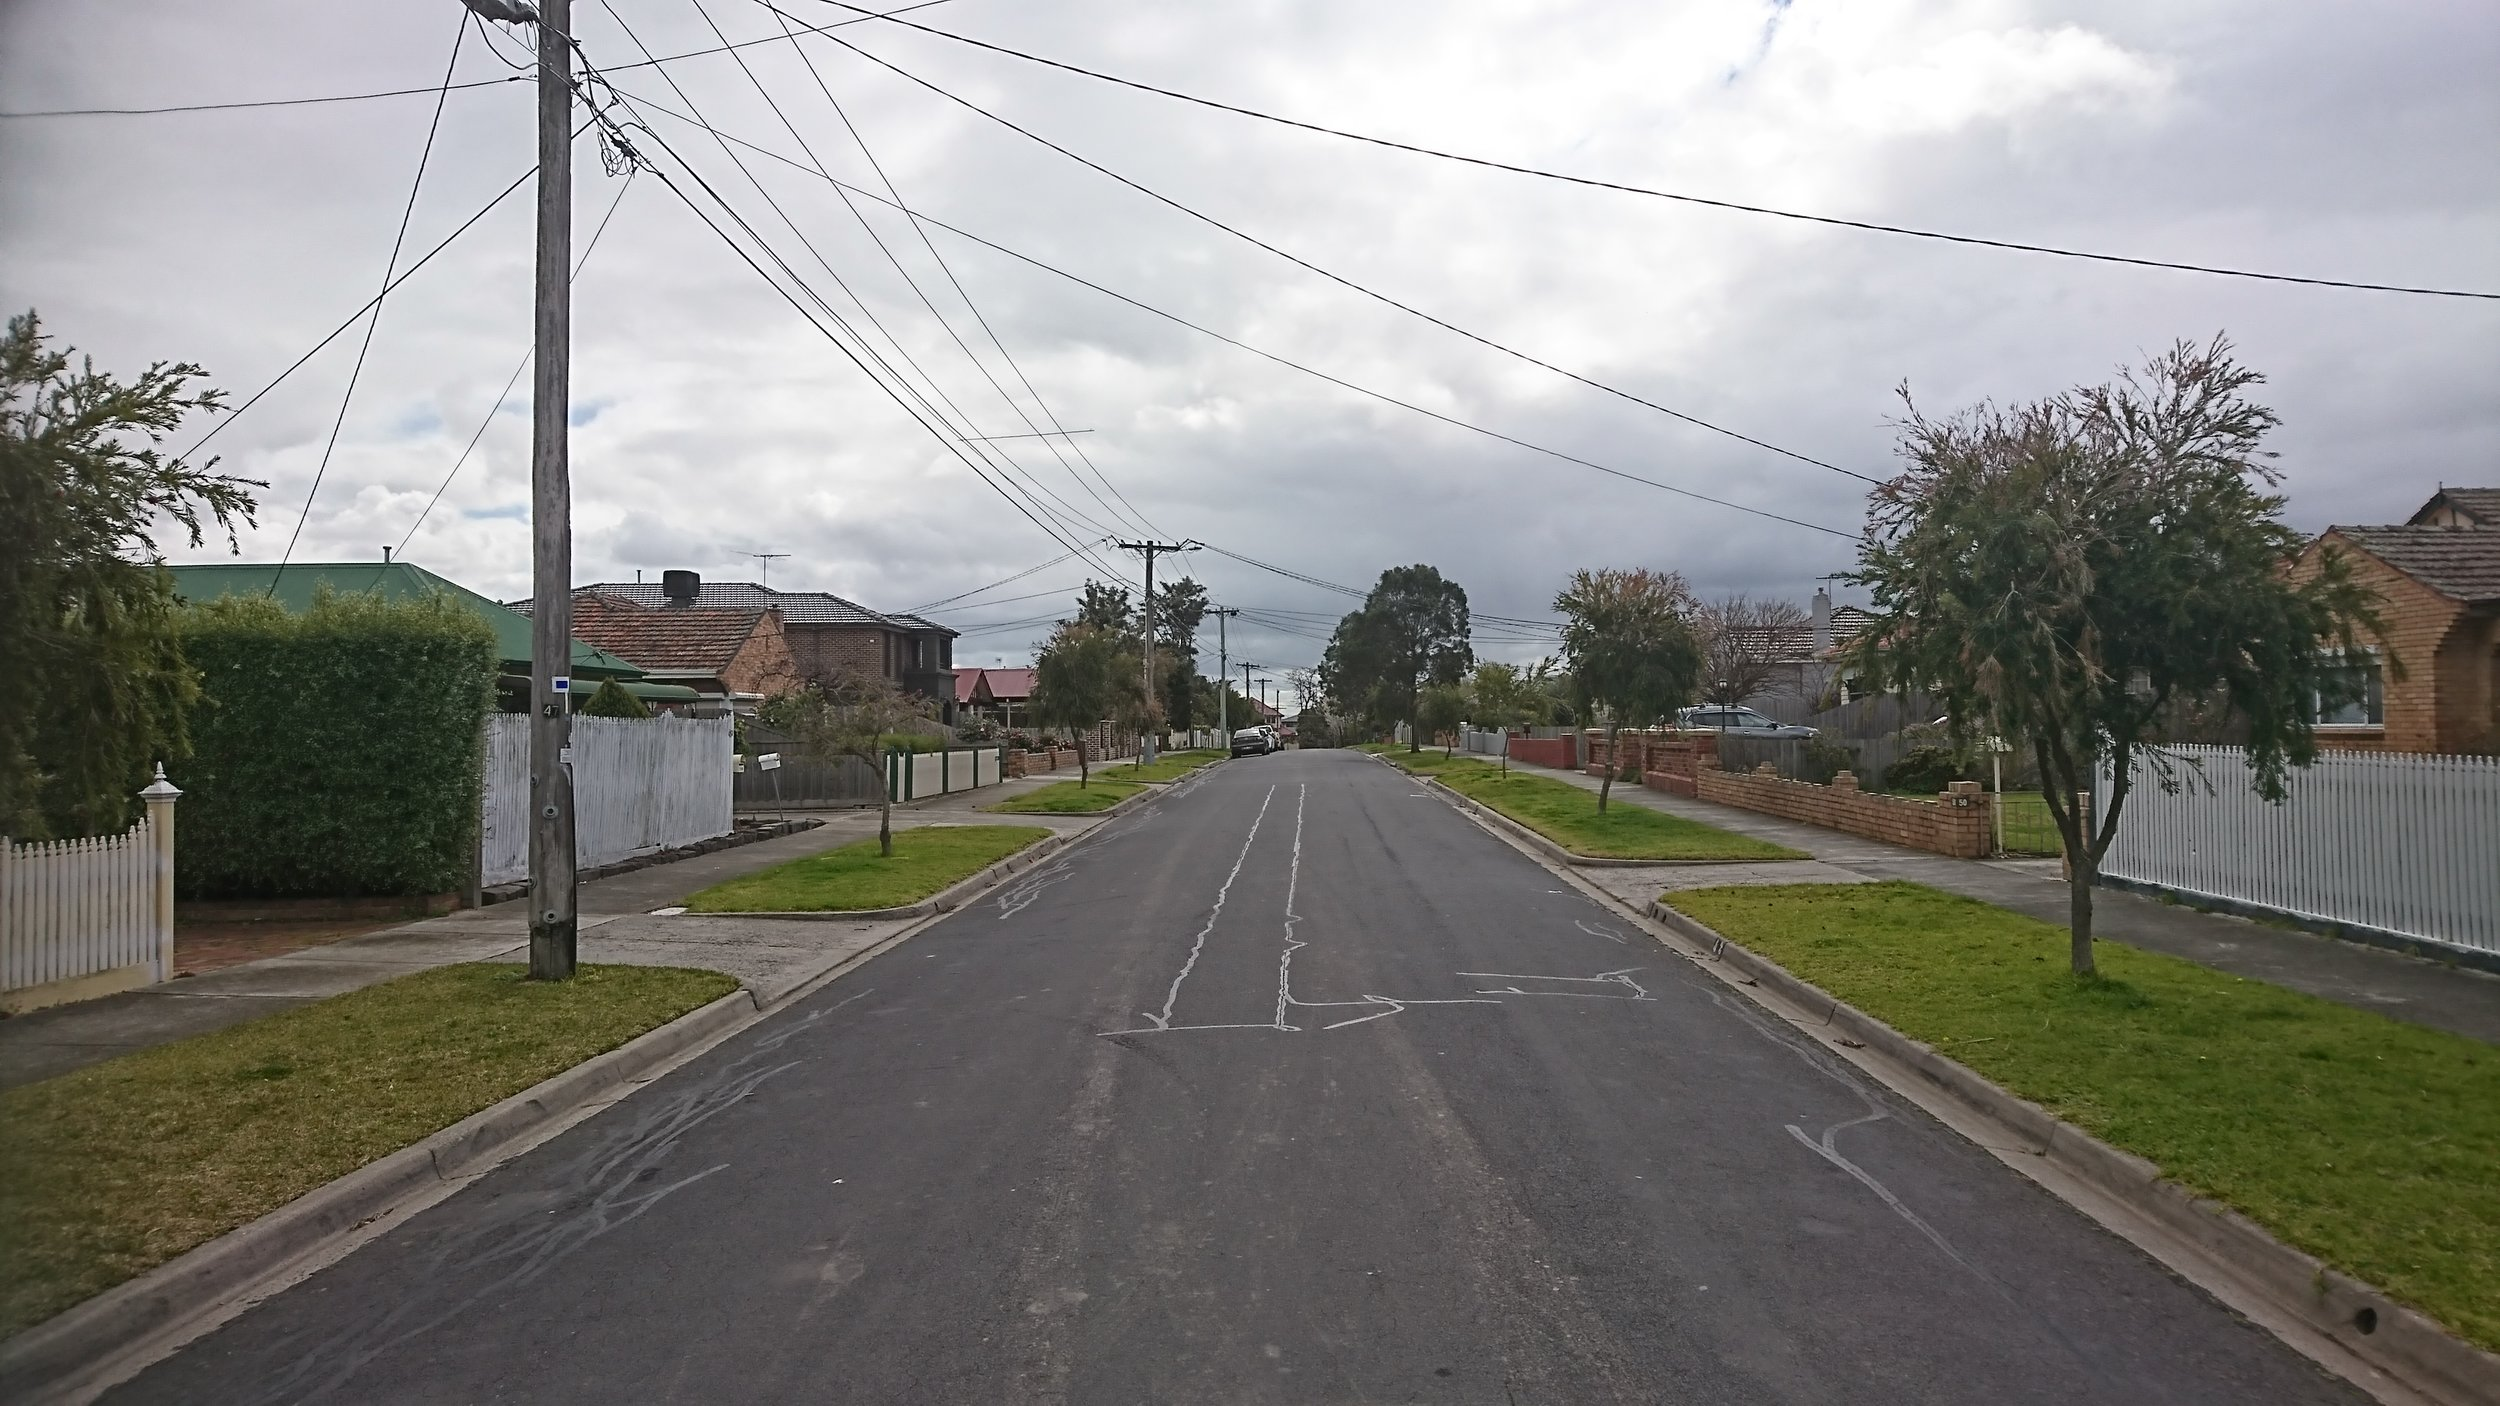 Our street...